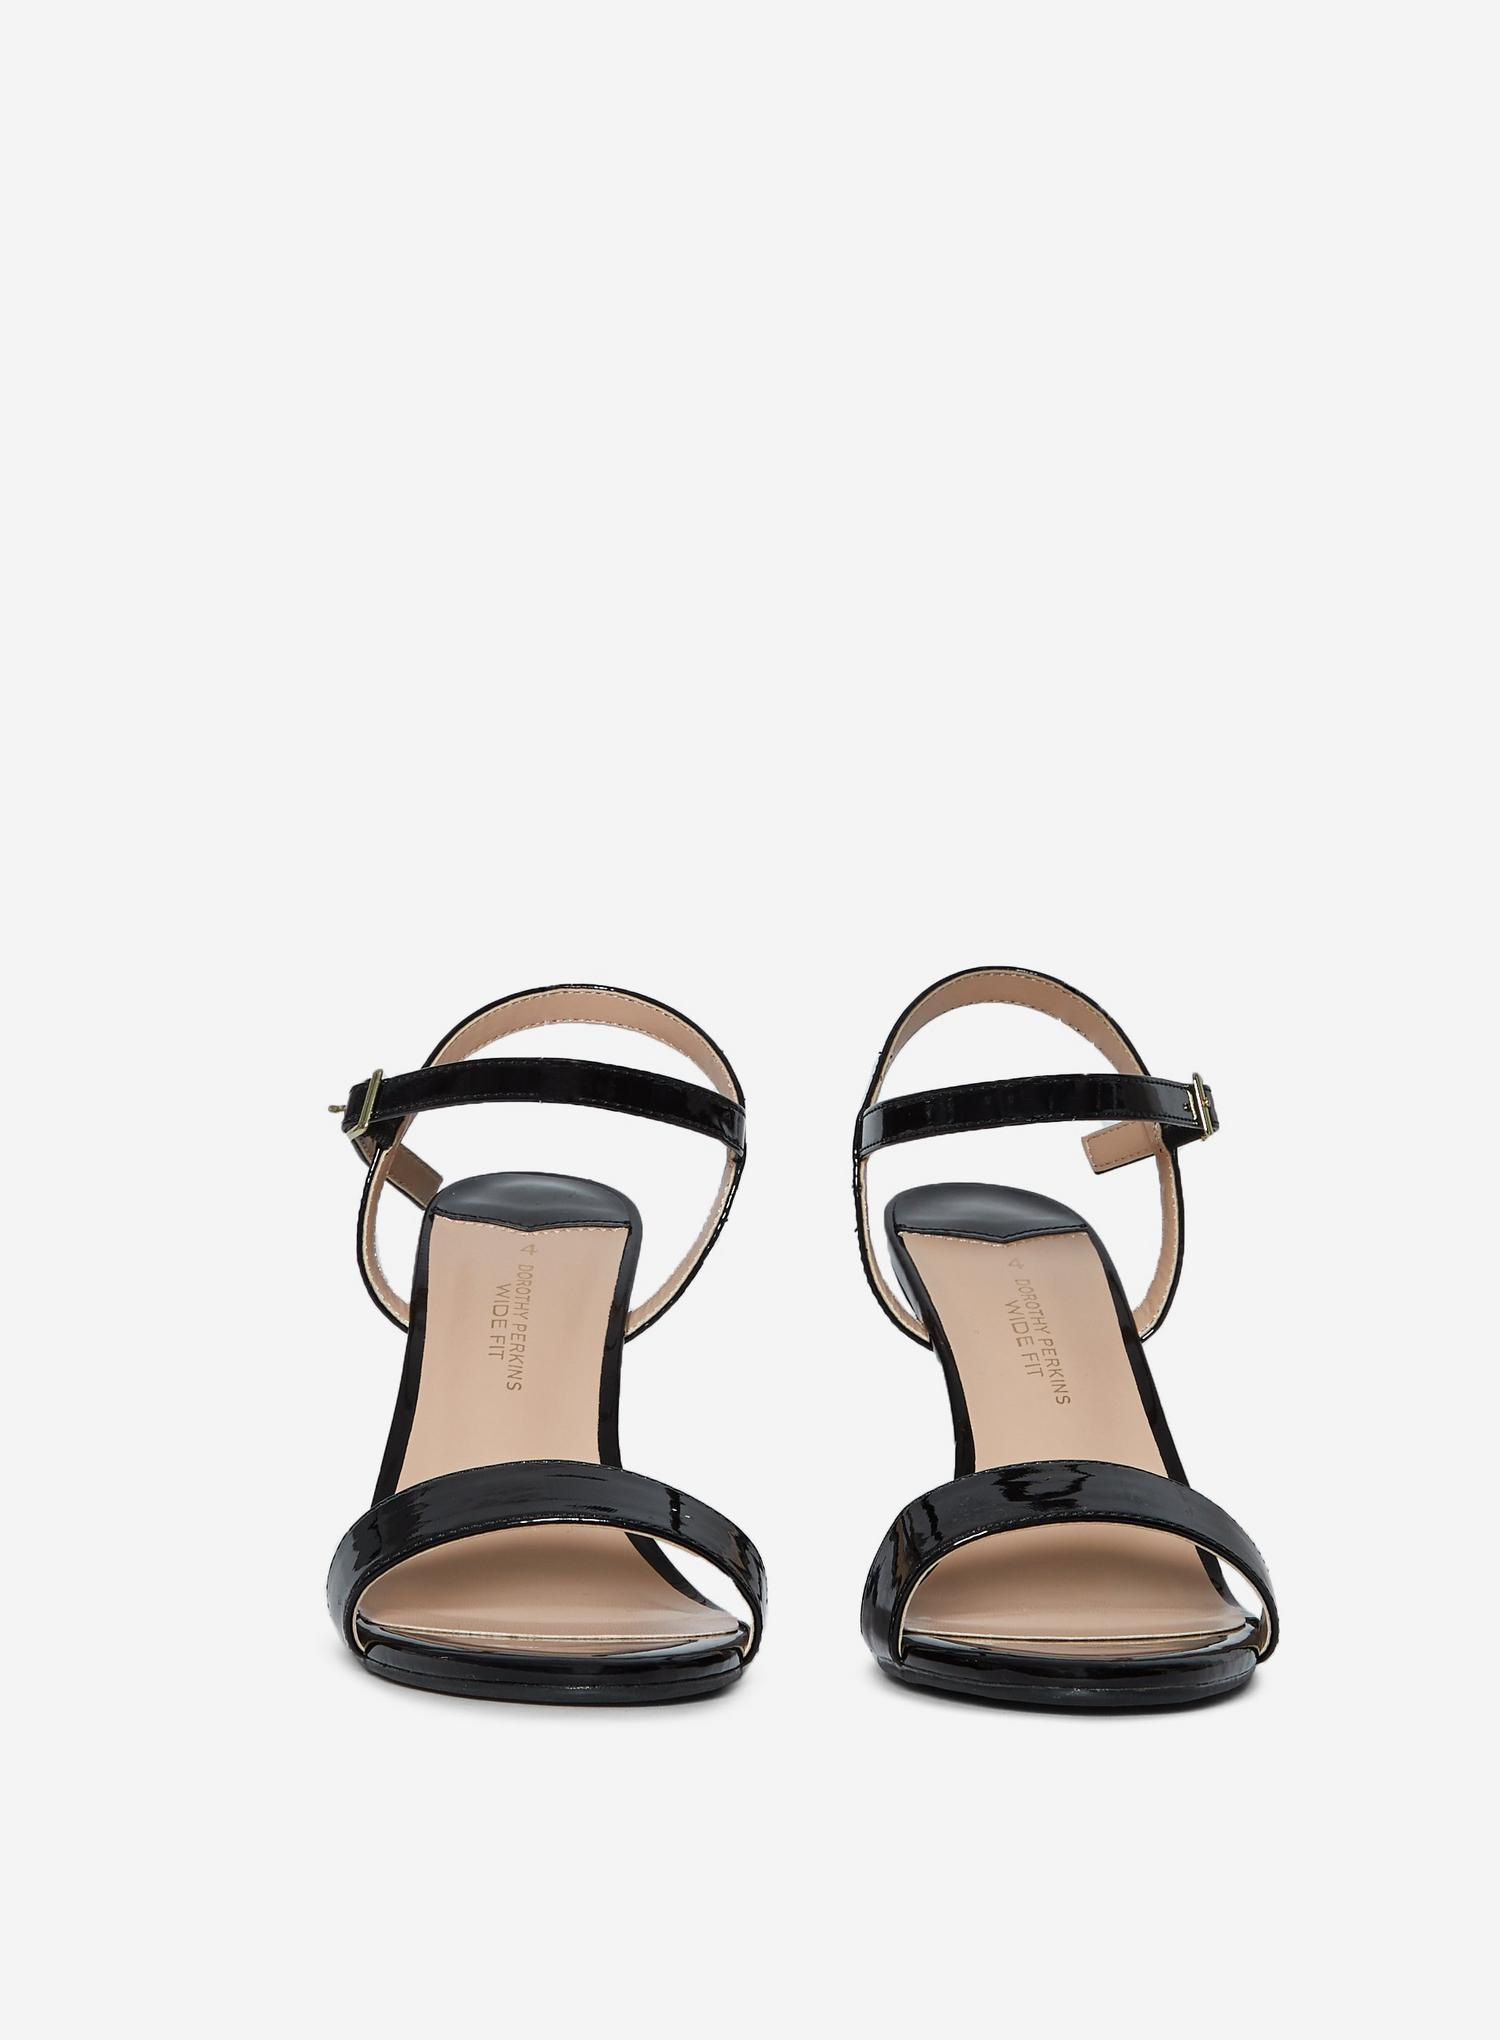 105 Wide Fit Black Patent Sizzle Sandals image number 3